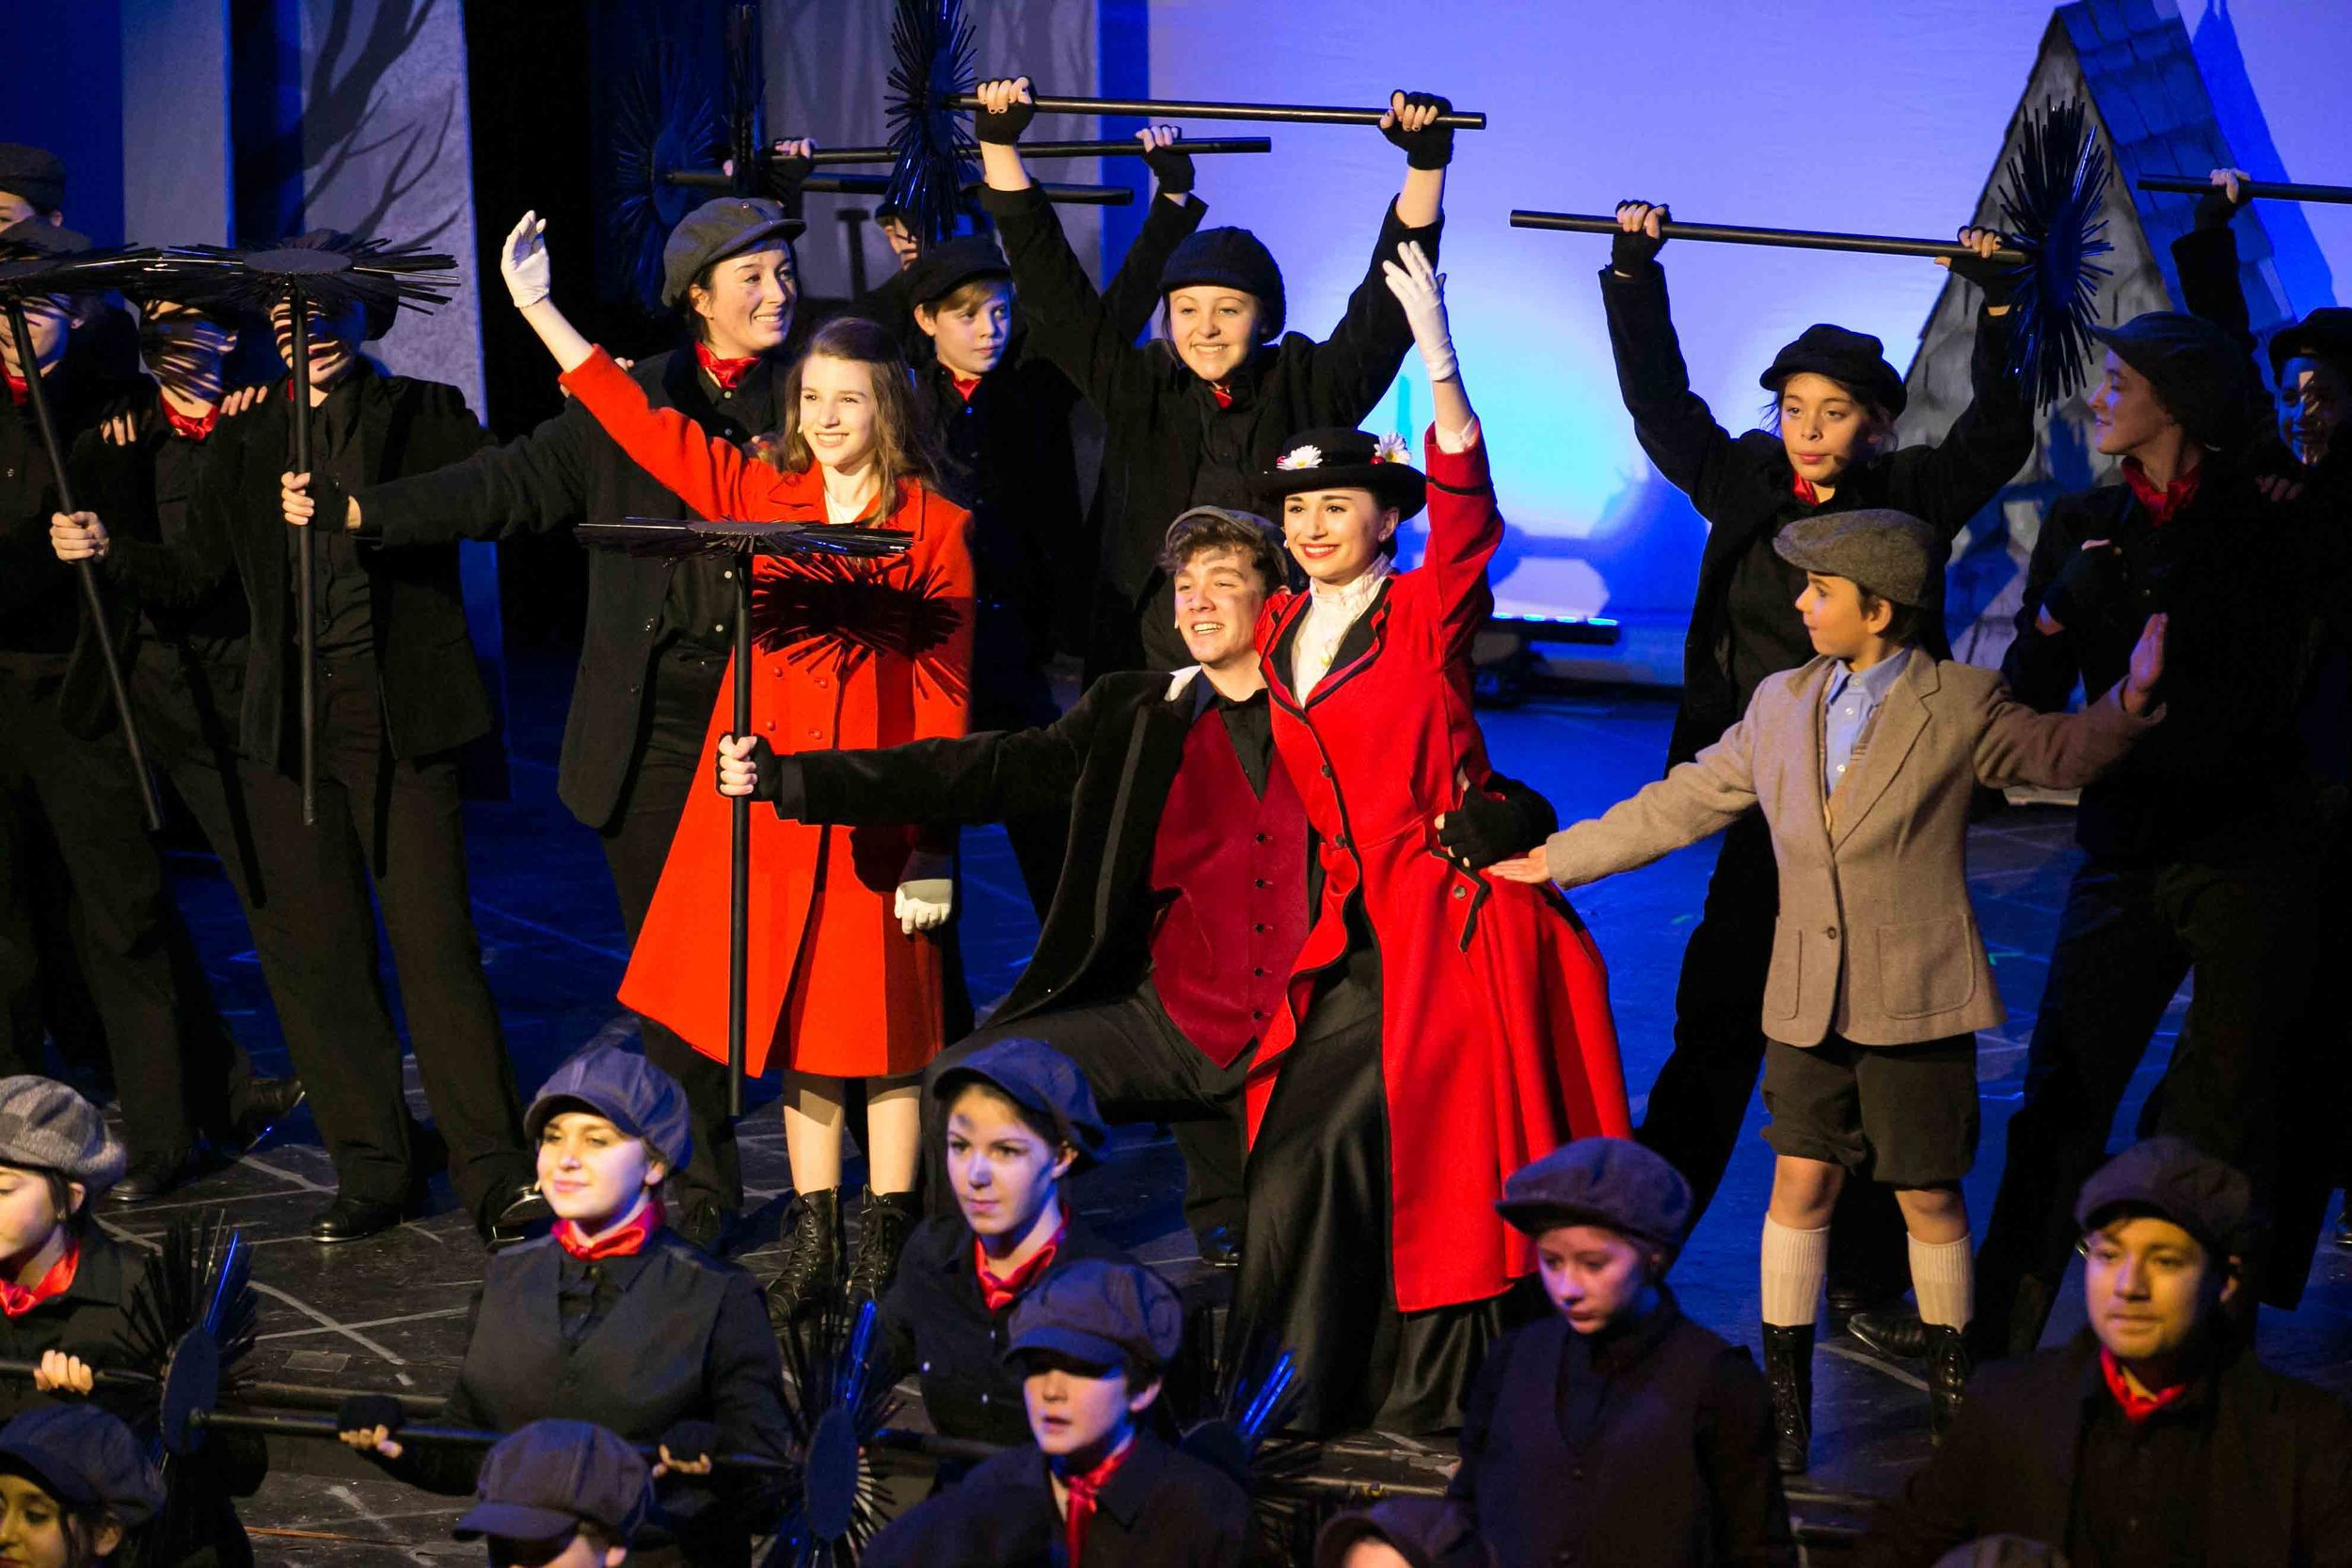 2-7-16 Mary Poppins Prim Cast 0403.jpg